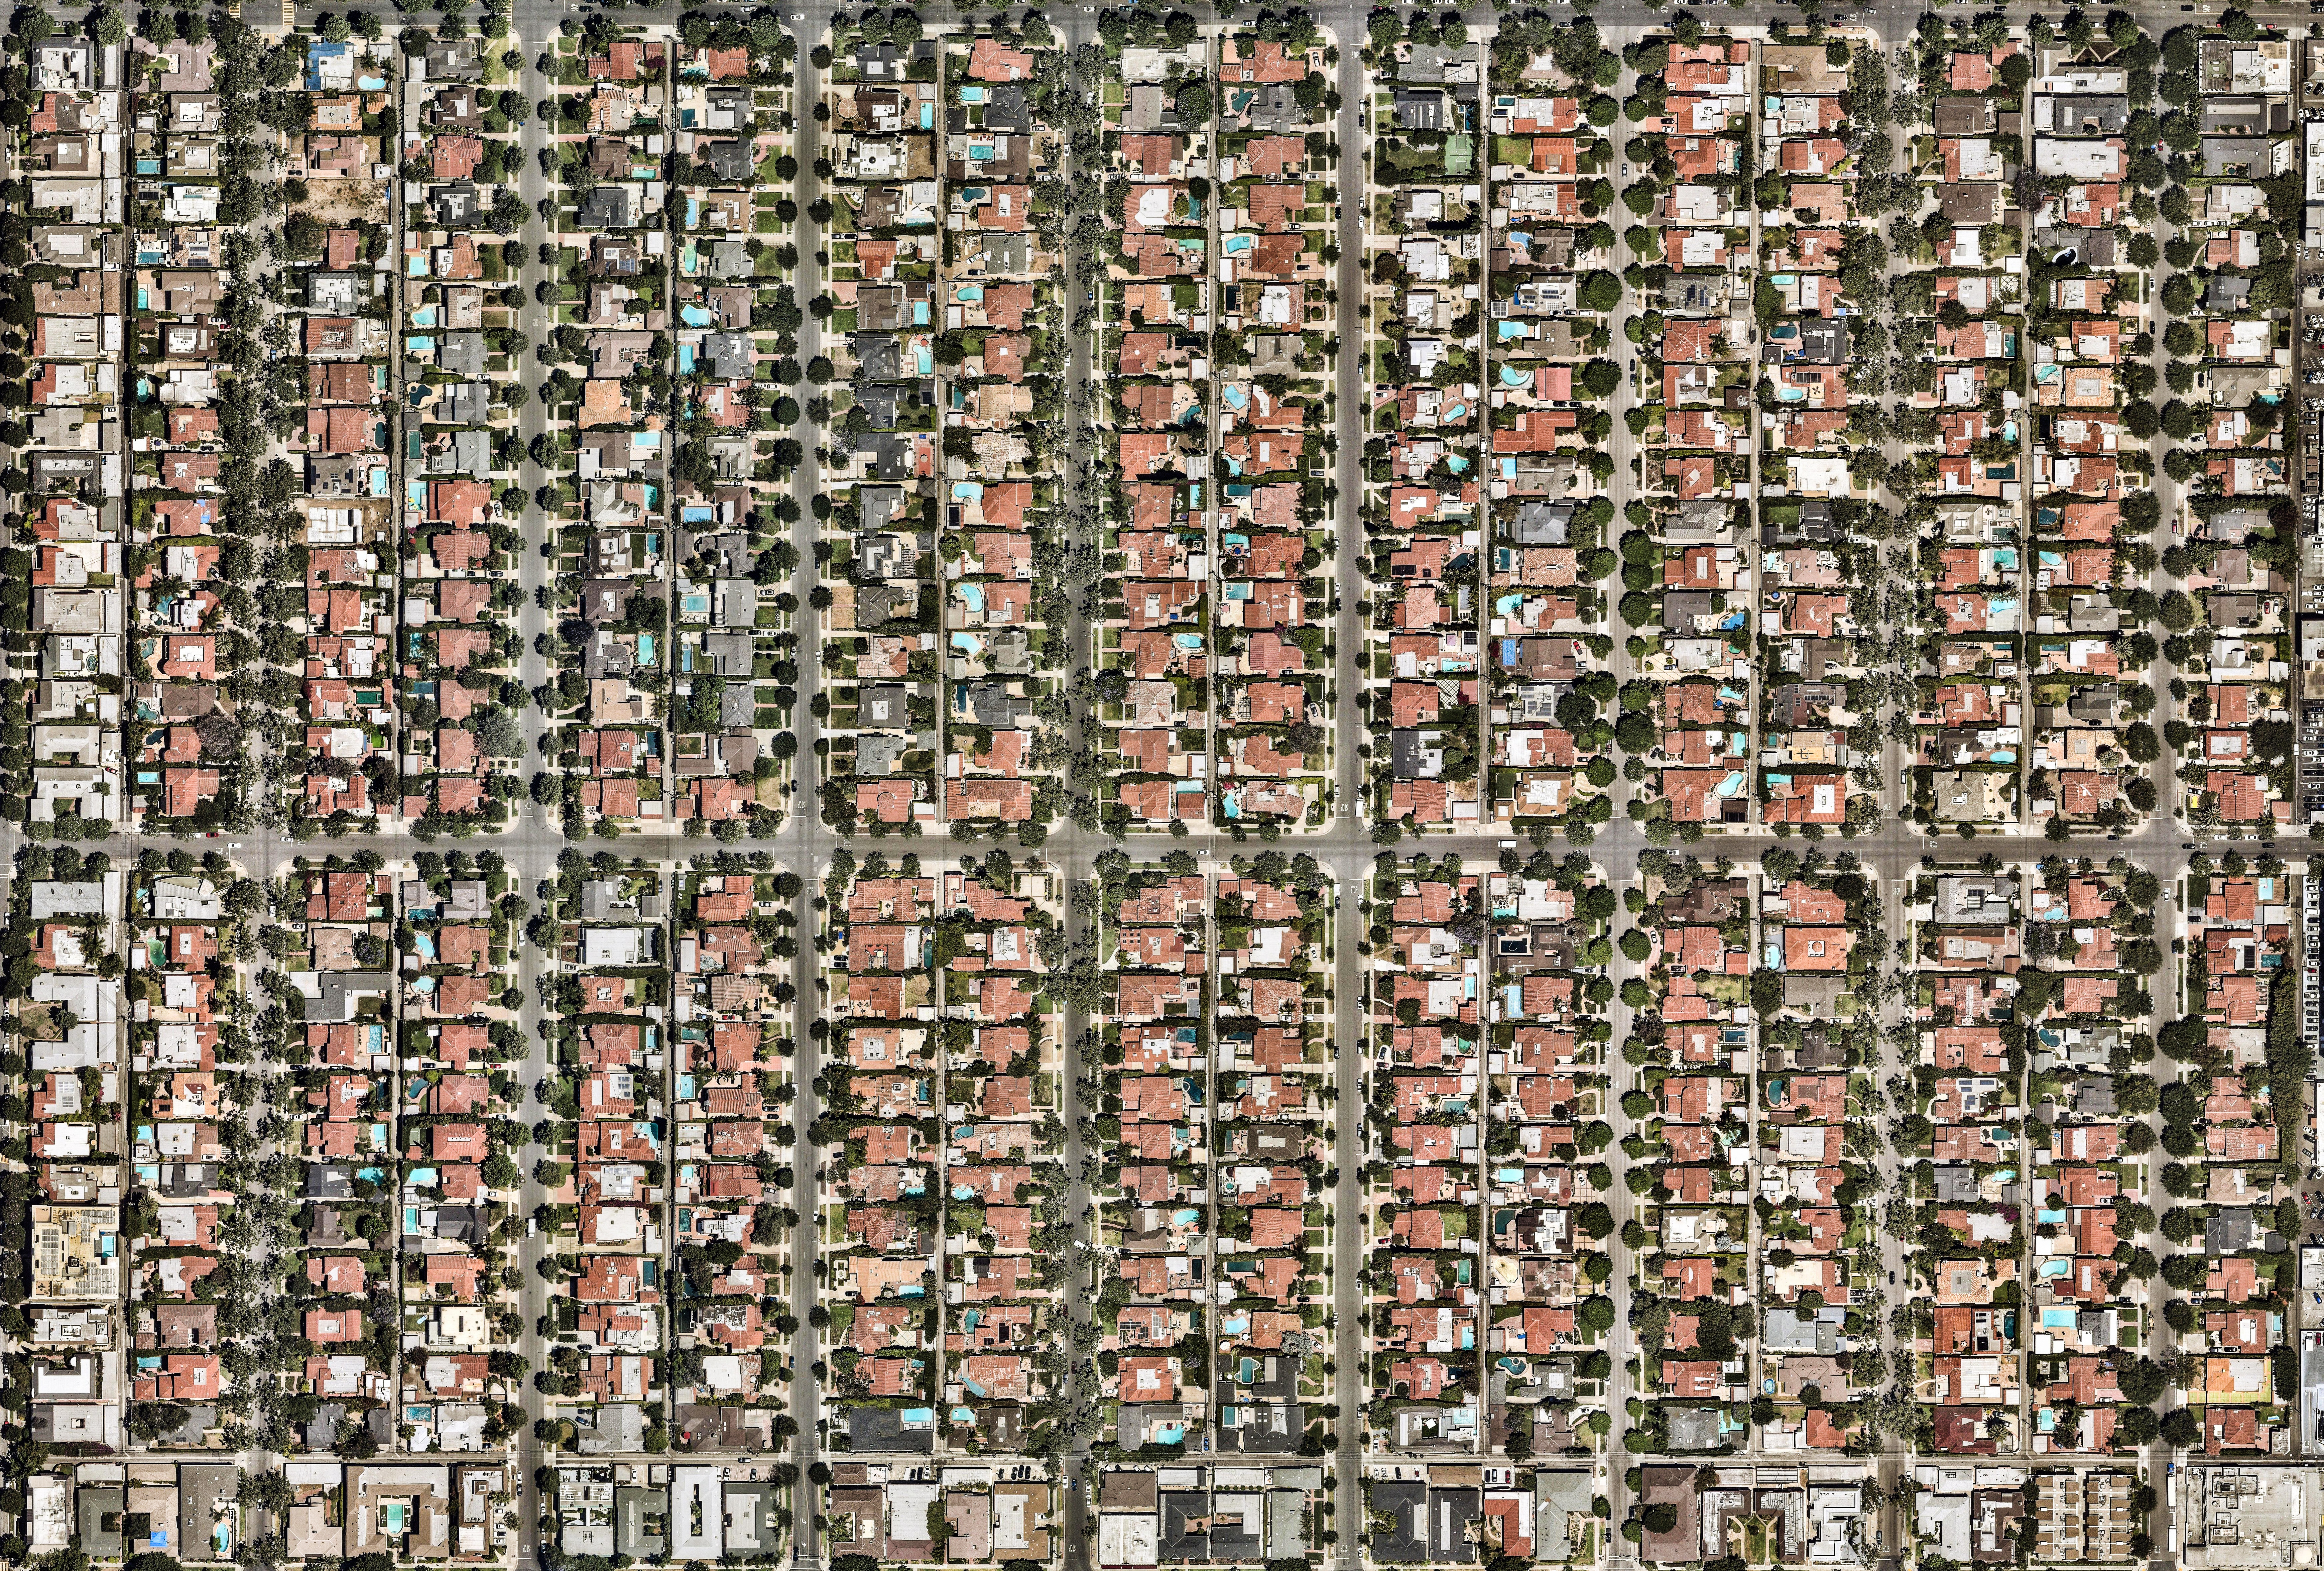 Aerial view of LA neighborhoods